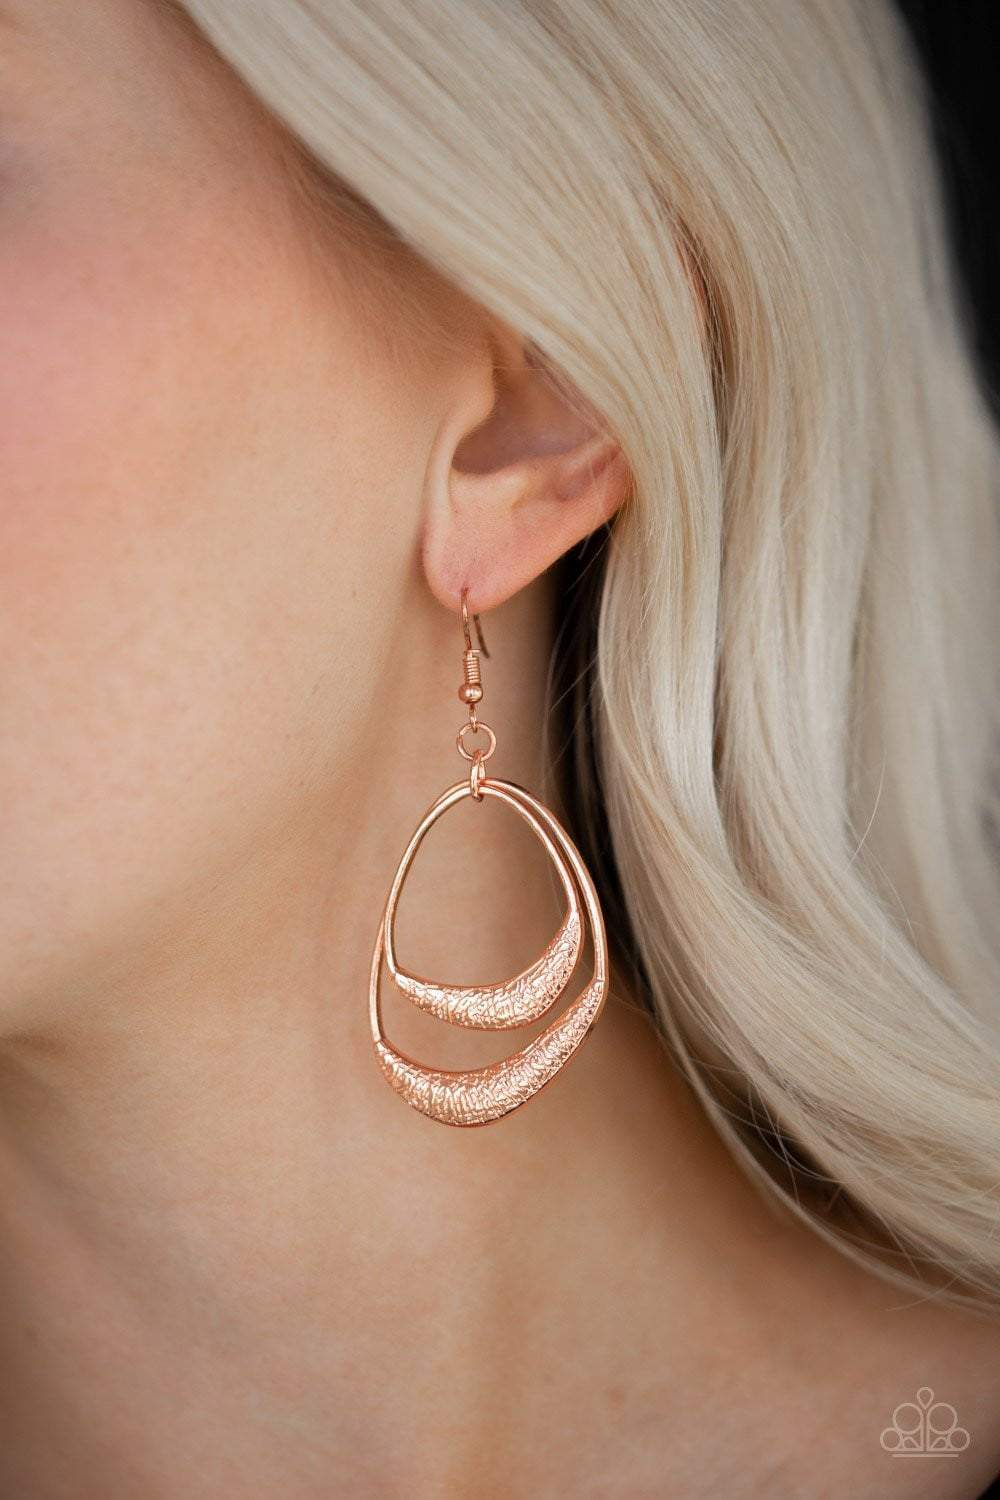 Paparazzi Follow The Beaten Path - Copper - Bling It On Online